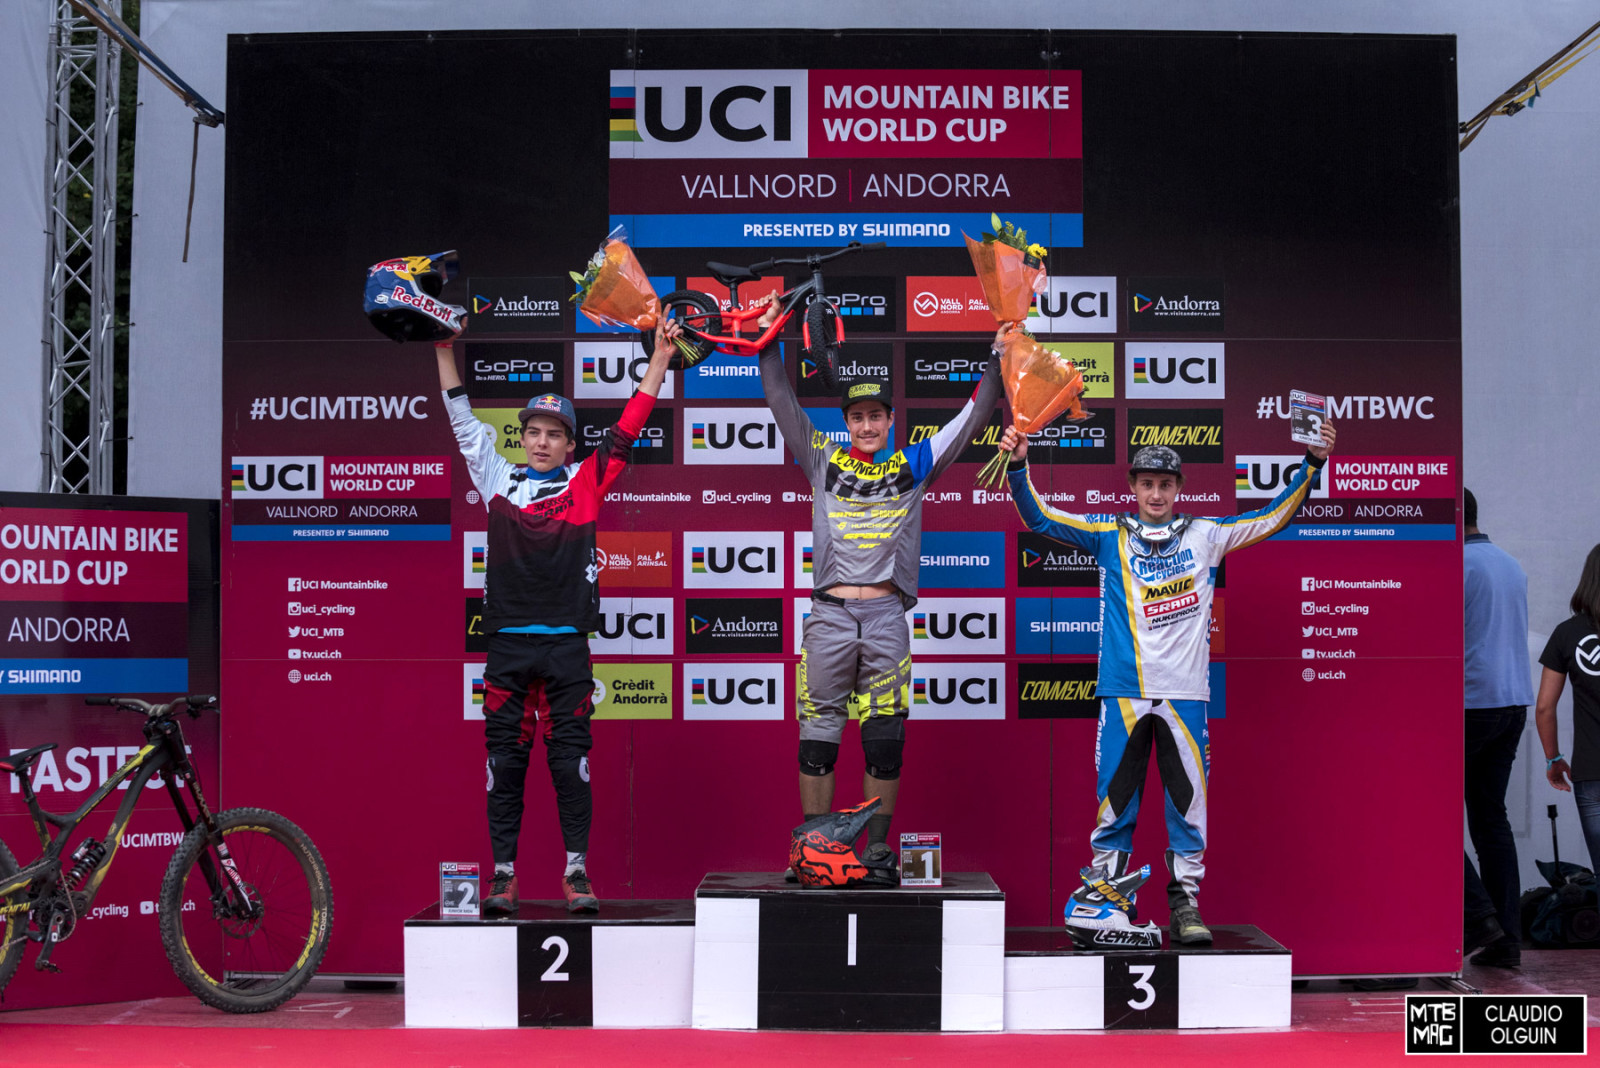 Men's Junior Podium